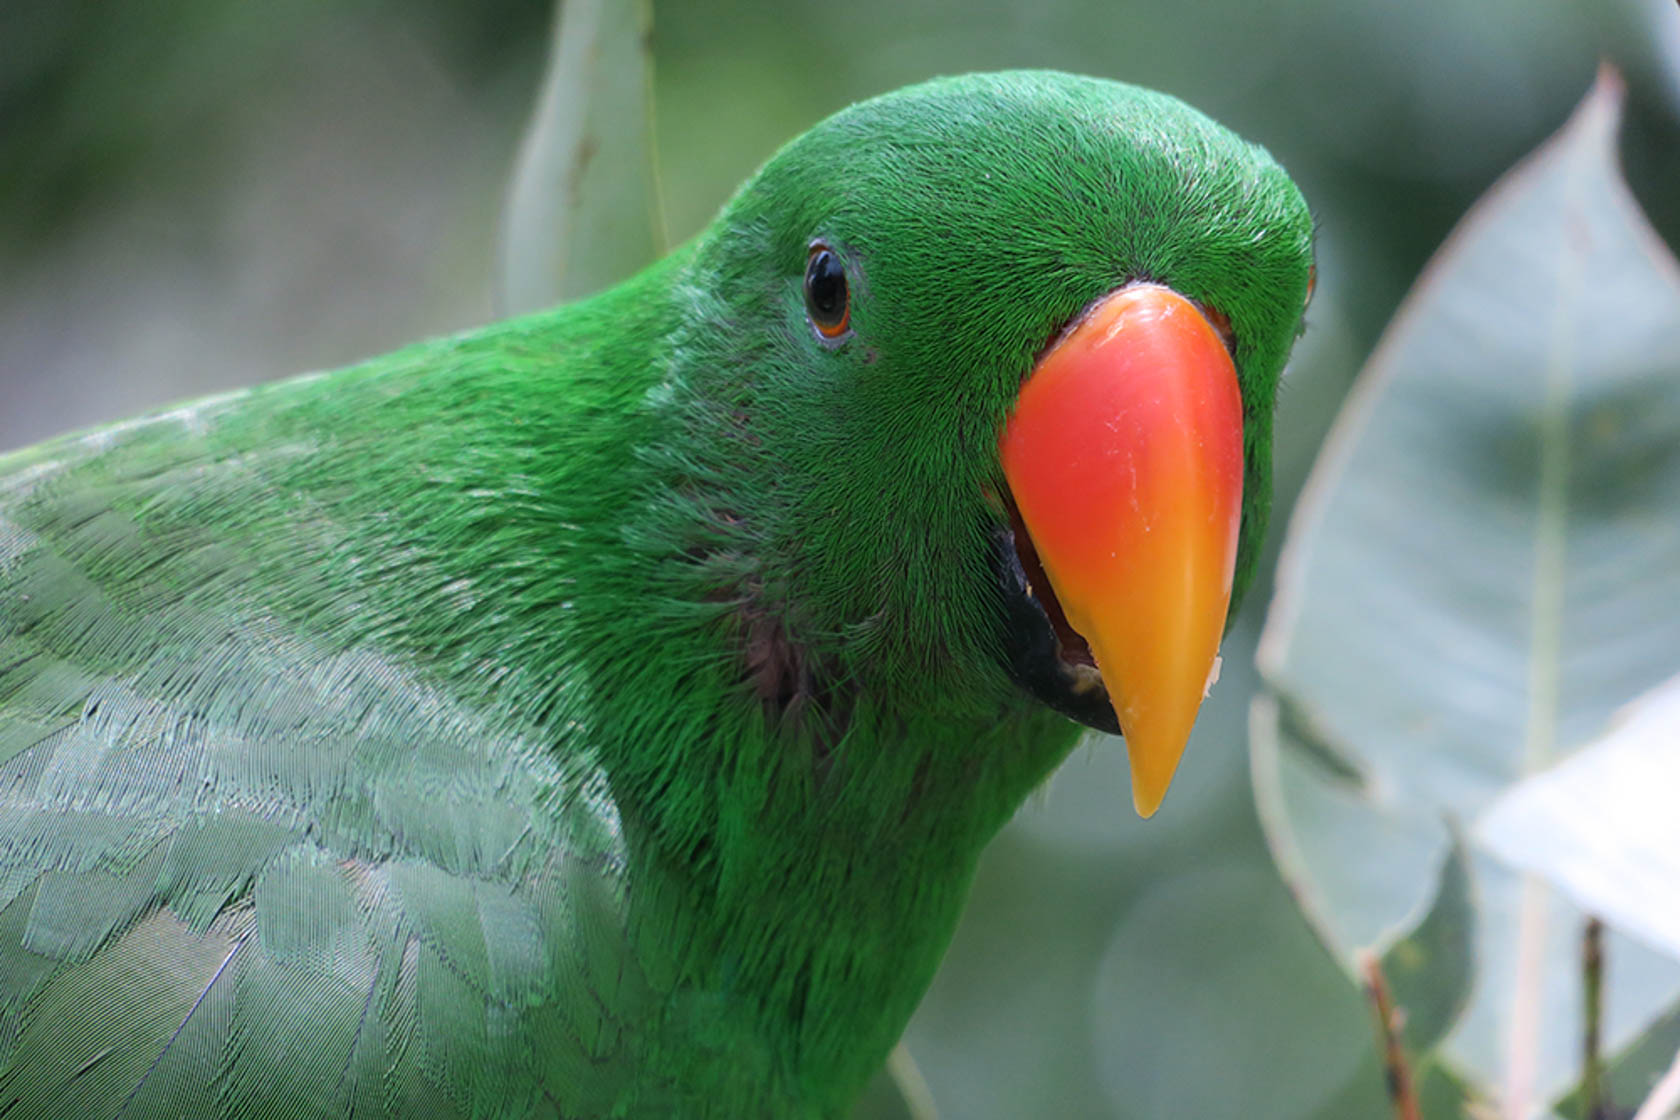 Green bird with a red beak close up shot on the PowerShot G3 X